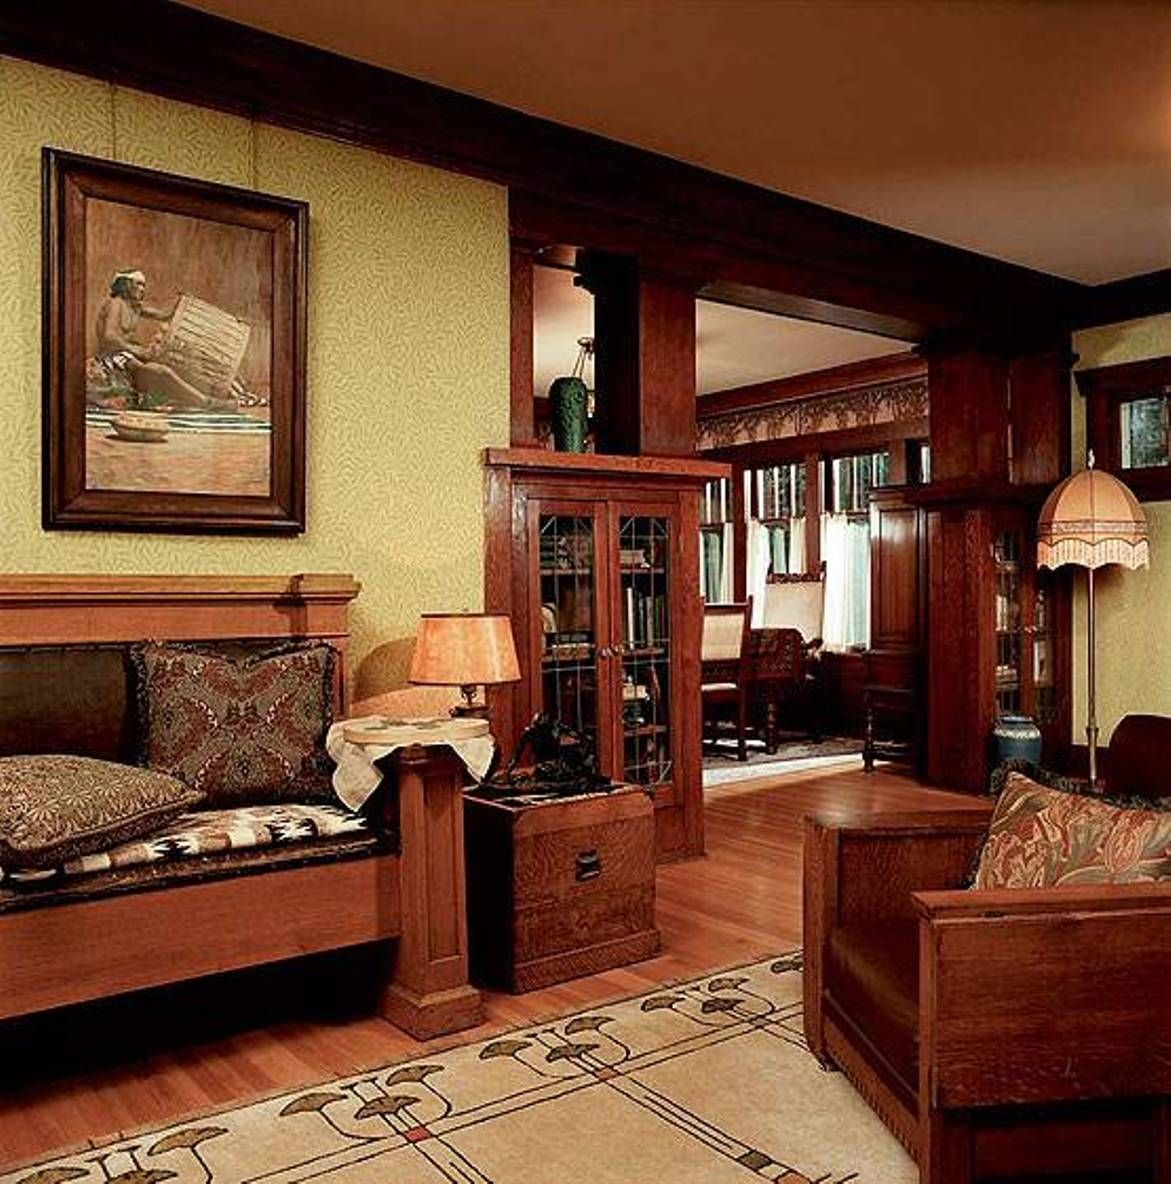 Home Design And Decor Craftsman Interior Decorating Styles Craftsman Interior Decorating